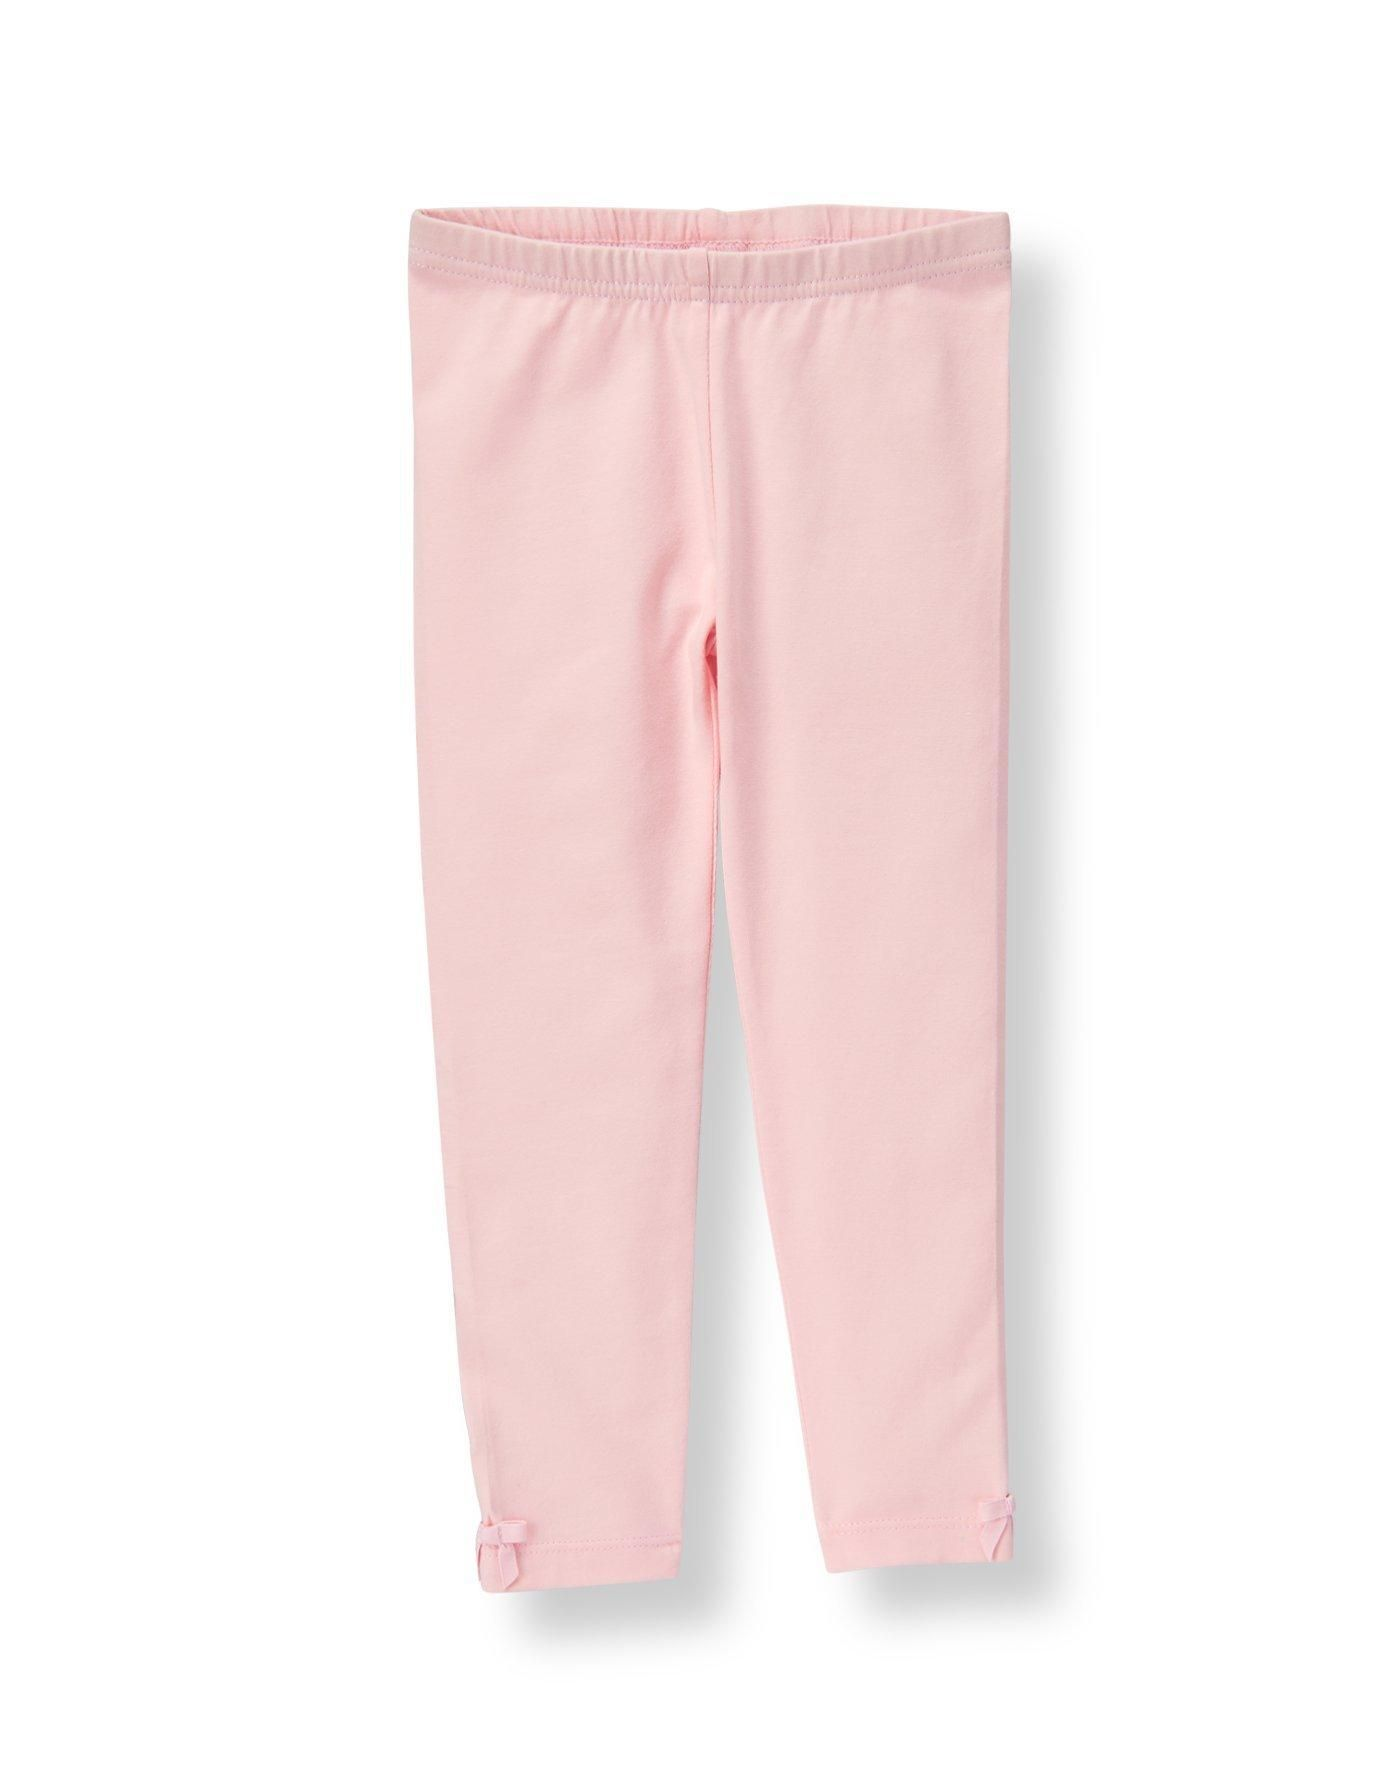 a4ee6fffff0ae Janie and Jack Pink legging grosgrain ribbon bow accents at the cuffs.